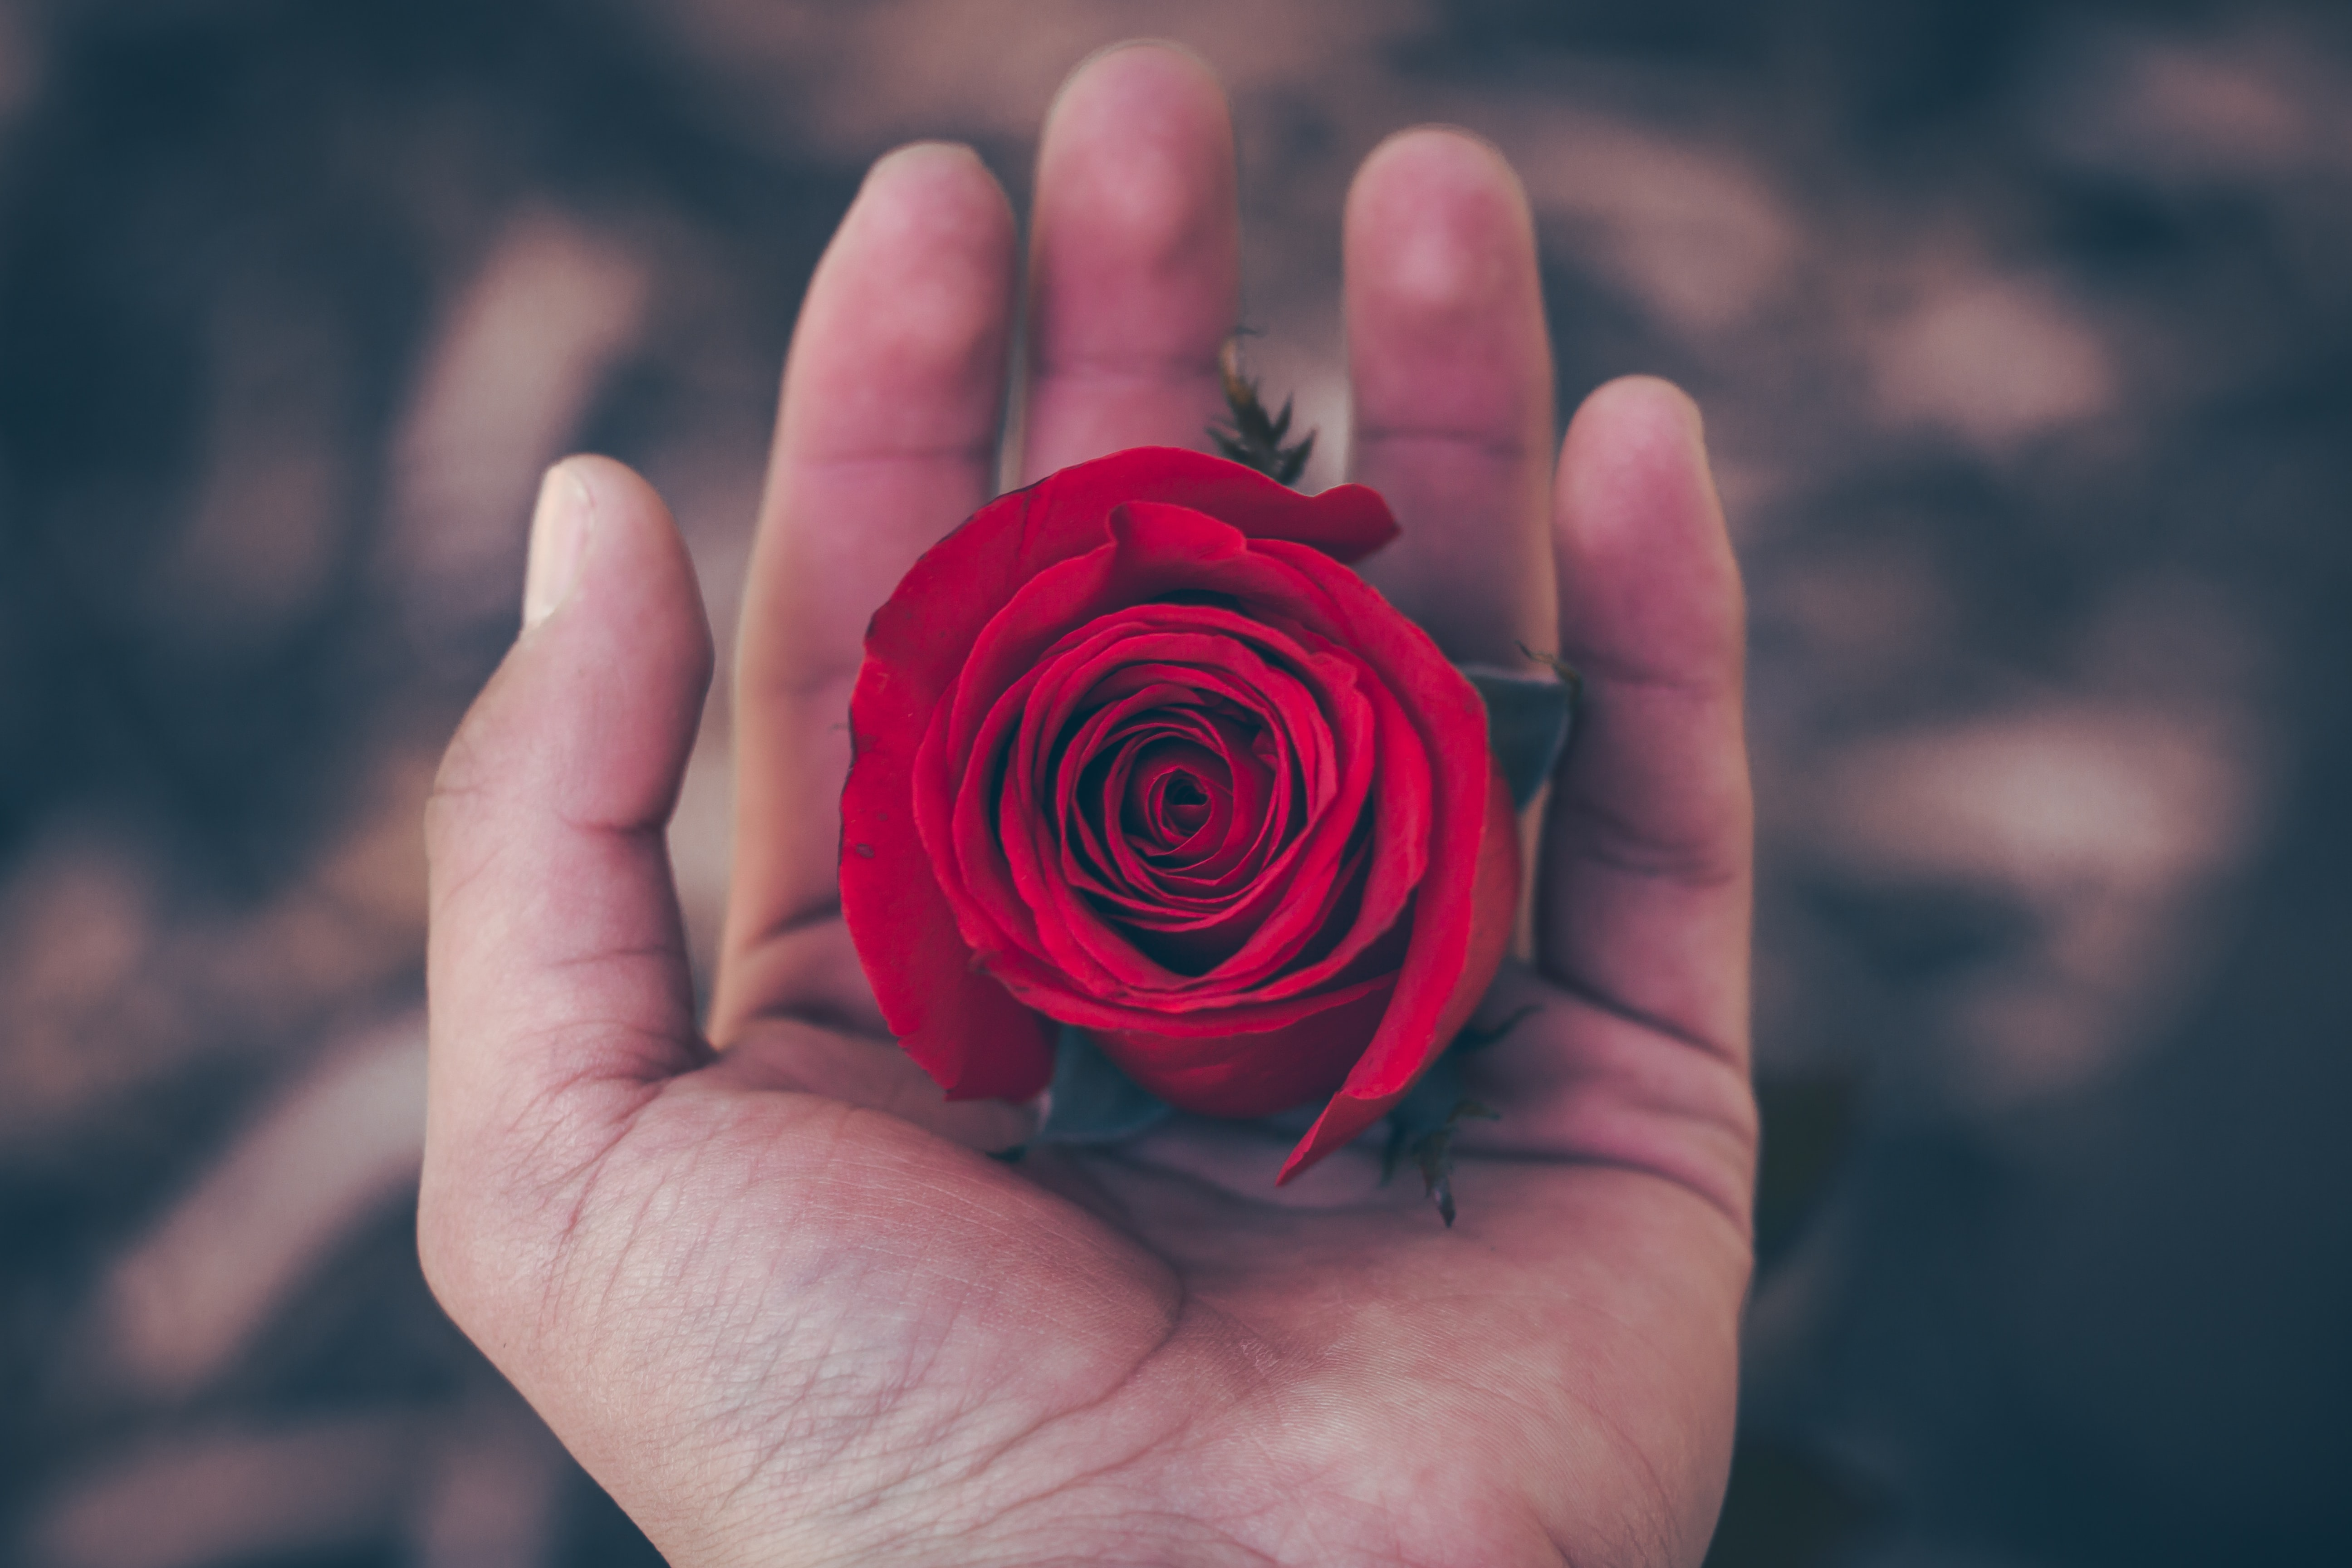 A person's hand holding a deep red rose flower